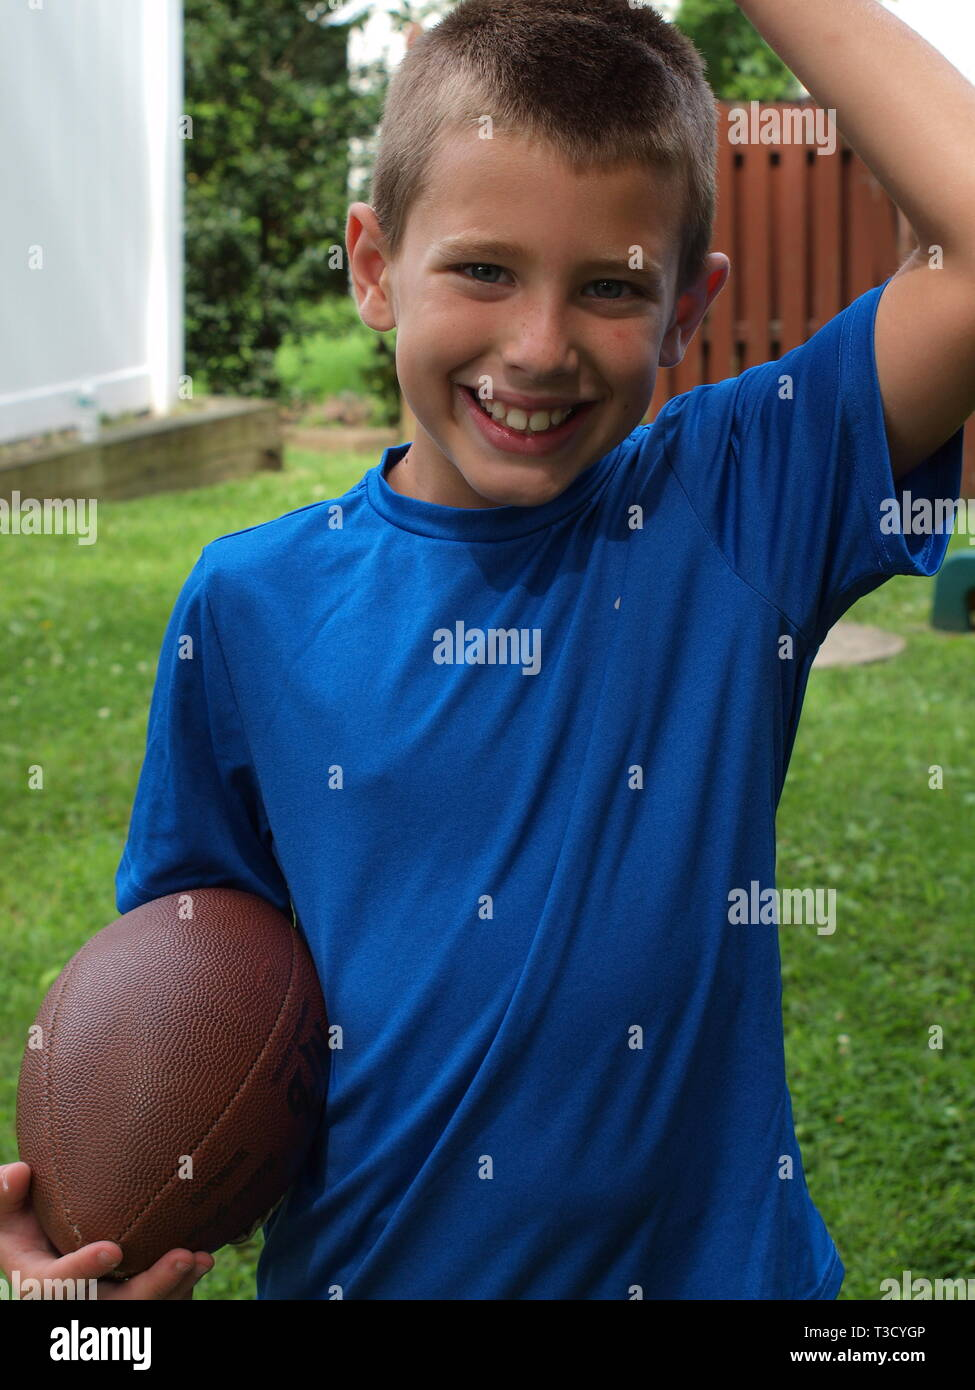 Smiling blue eyed boy in blue shirt and carrying a football ready to play. - Stock Image